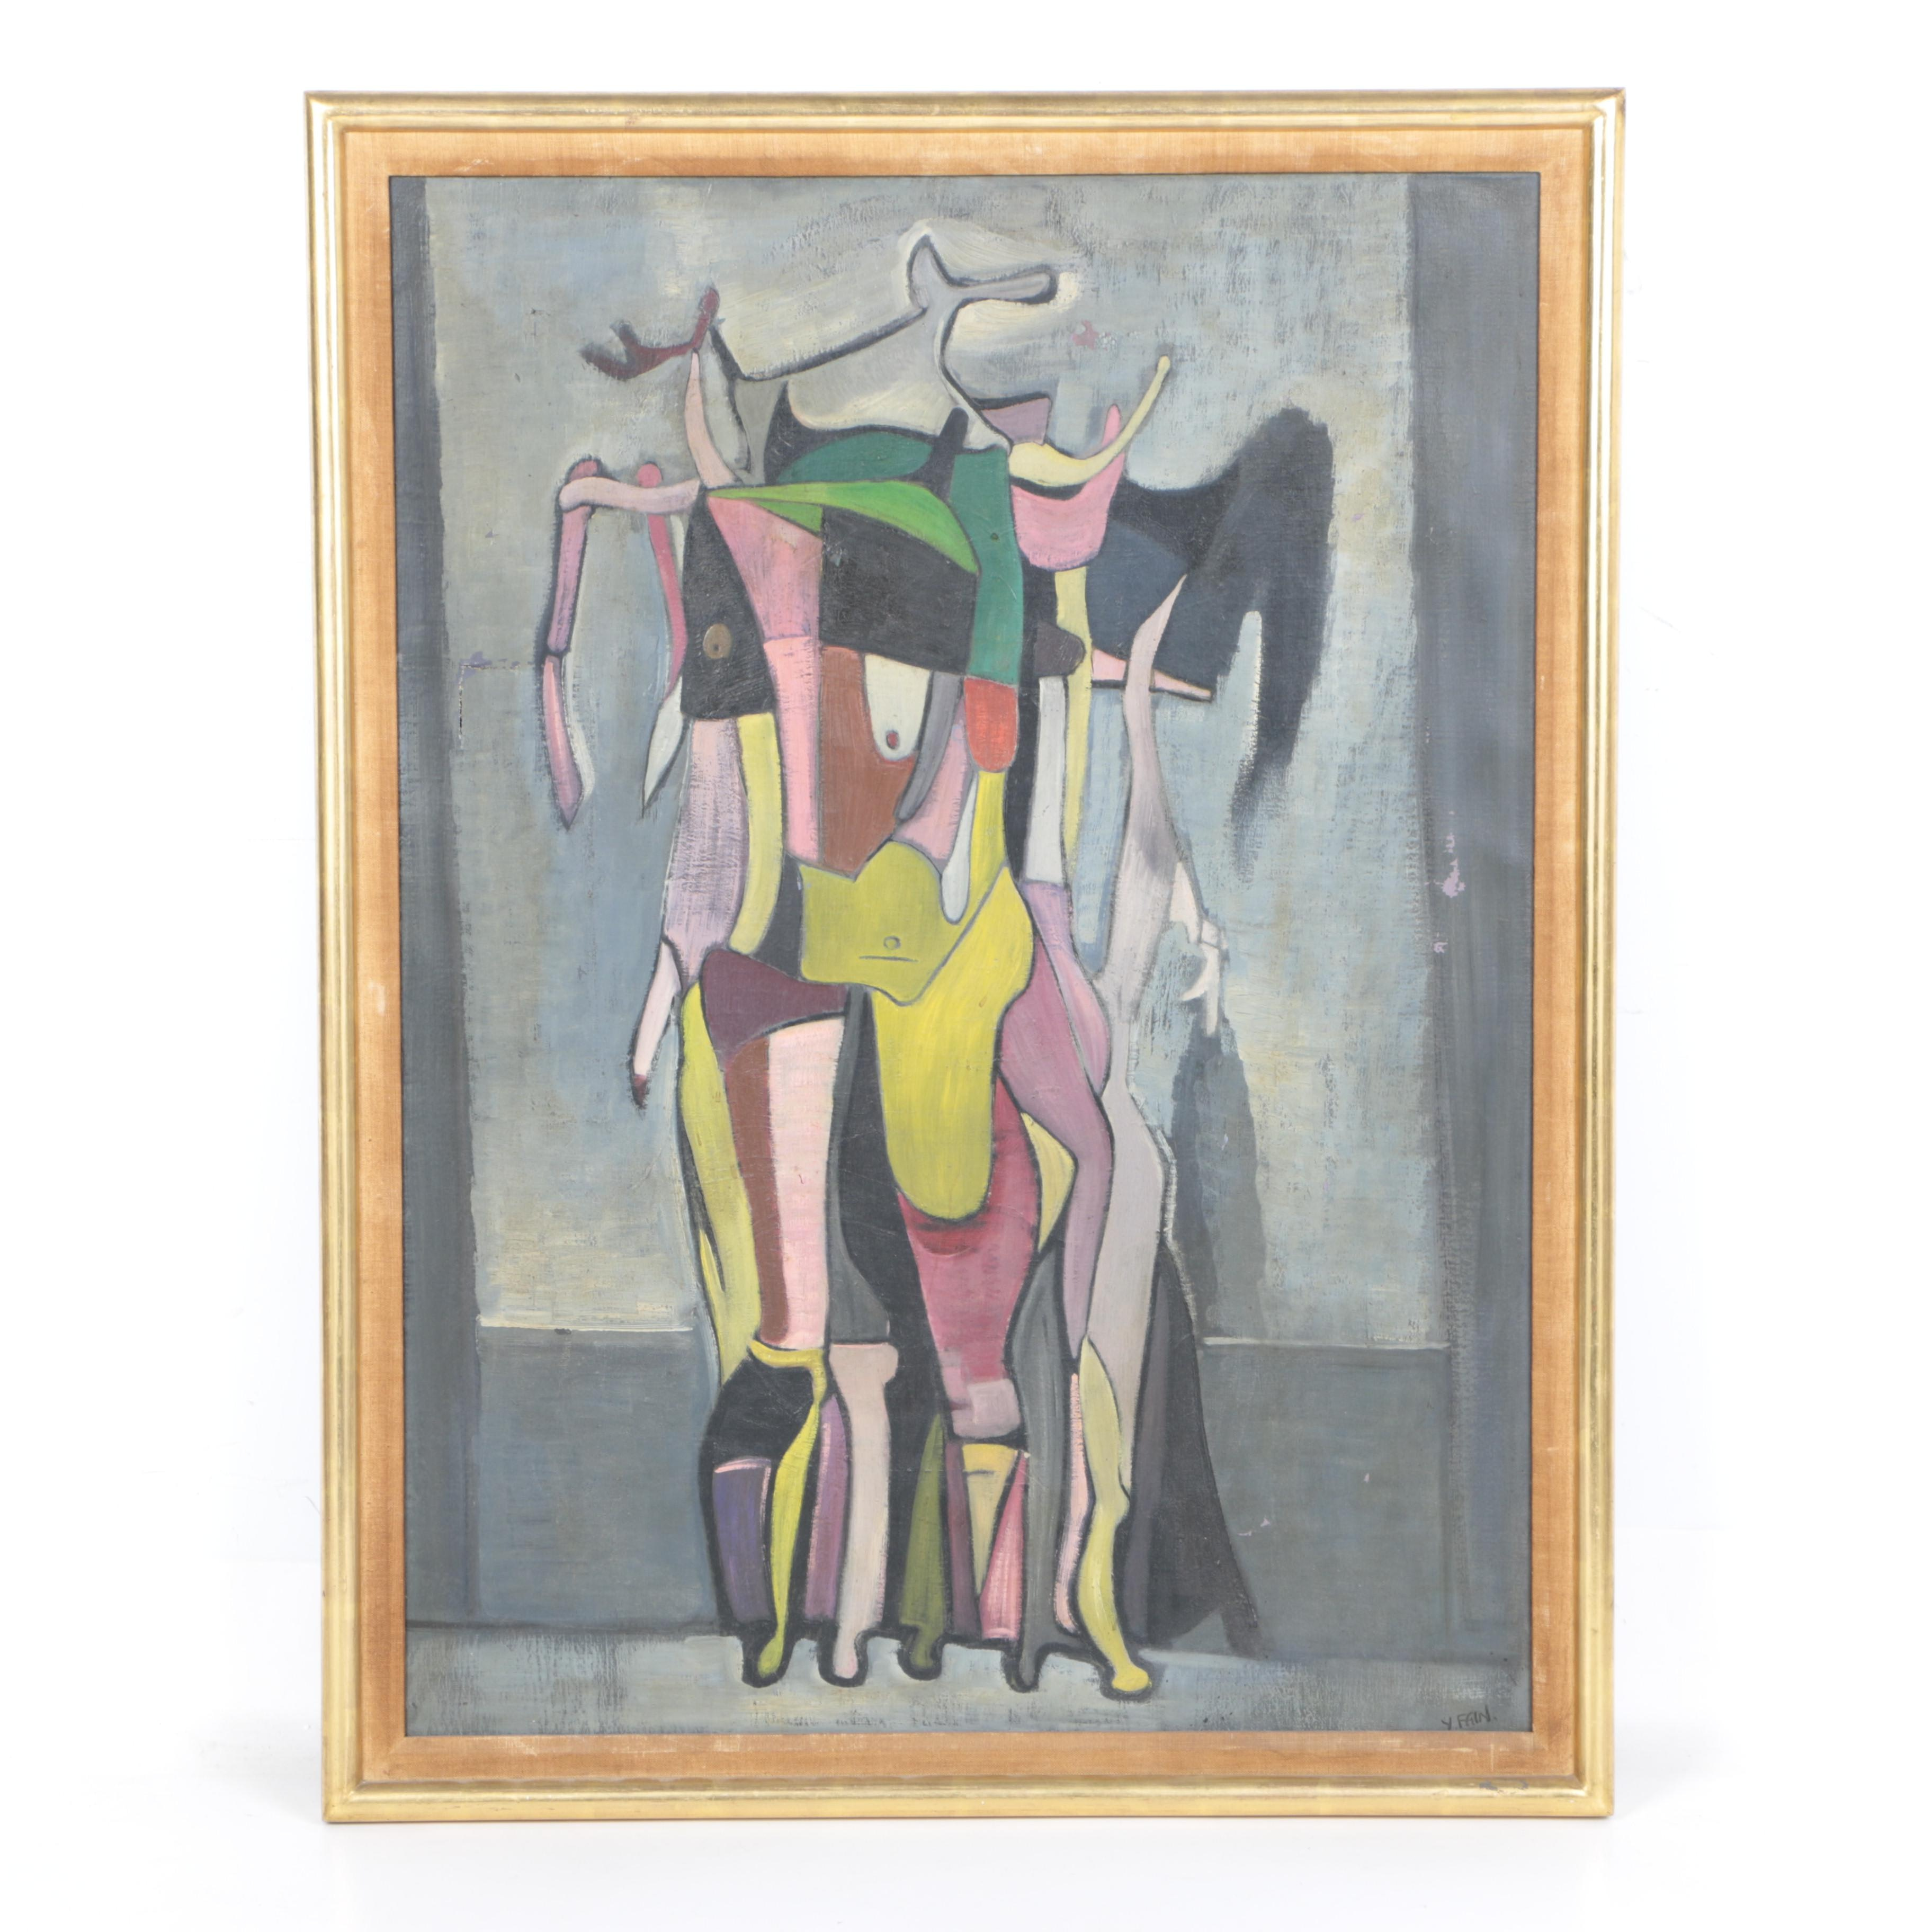 Yonia Fain Oil Painting on Canvas of Abstract Figures